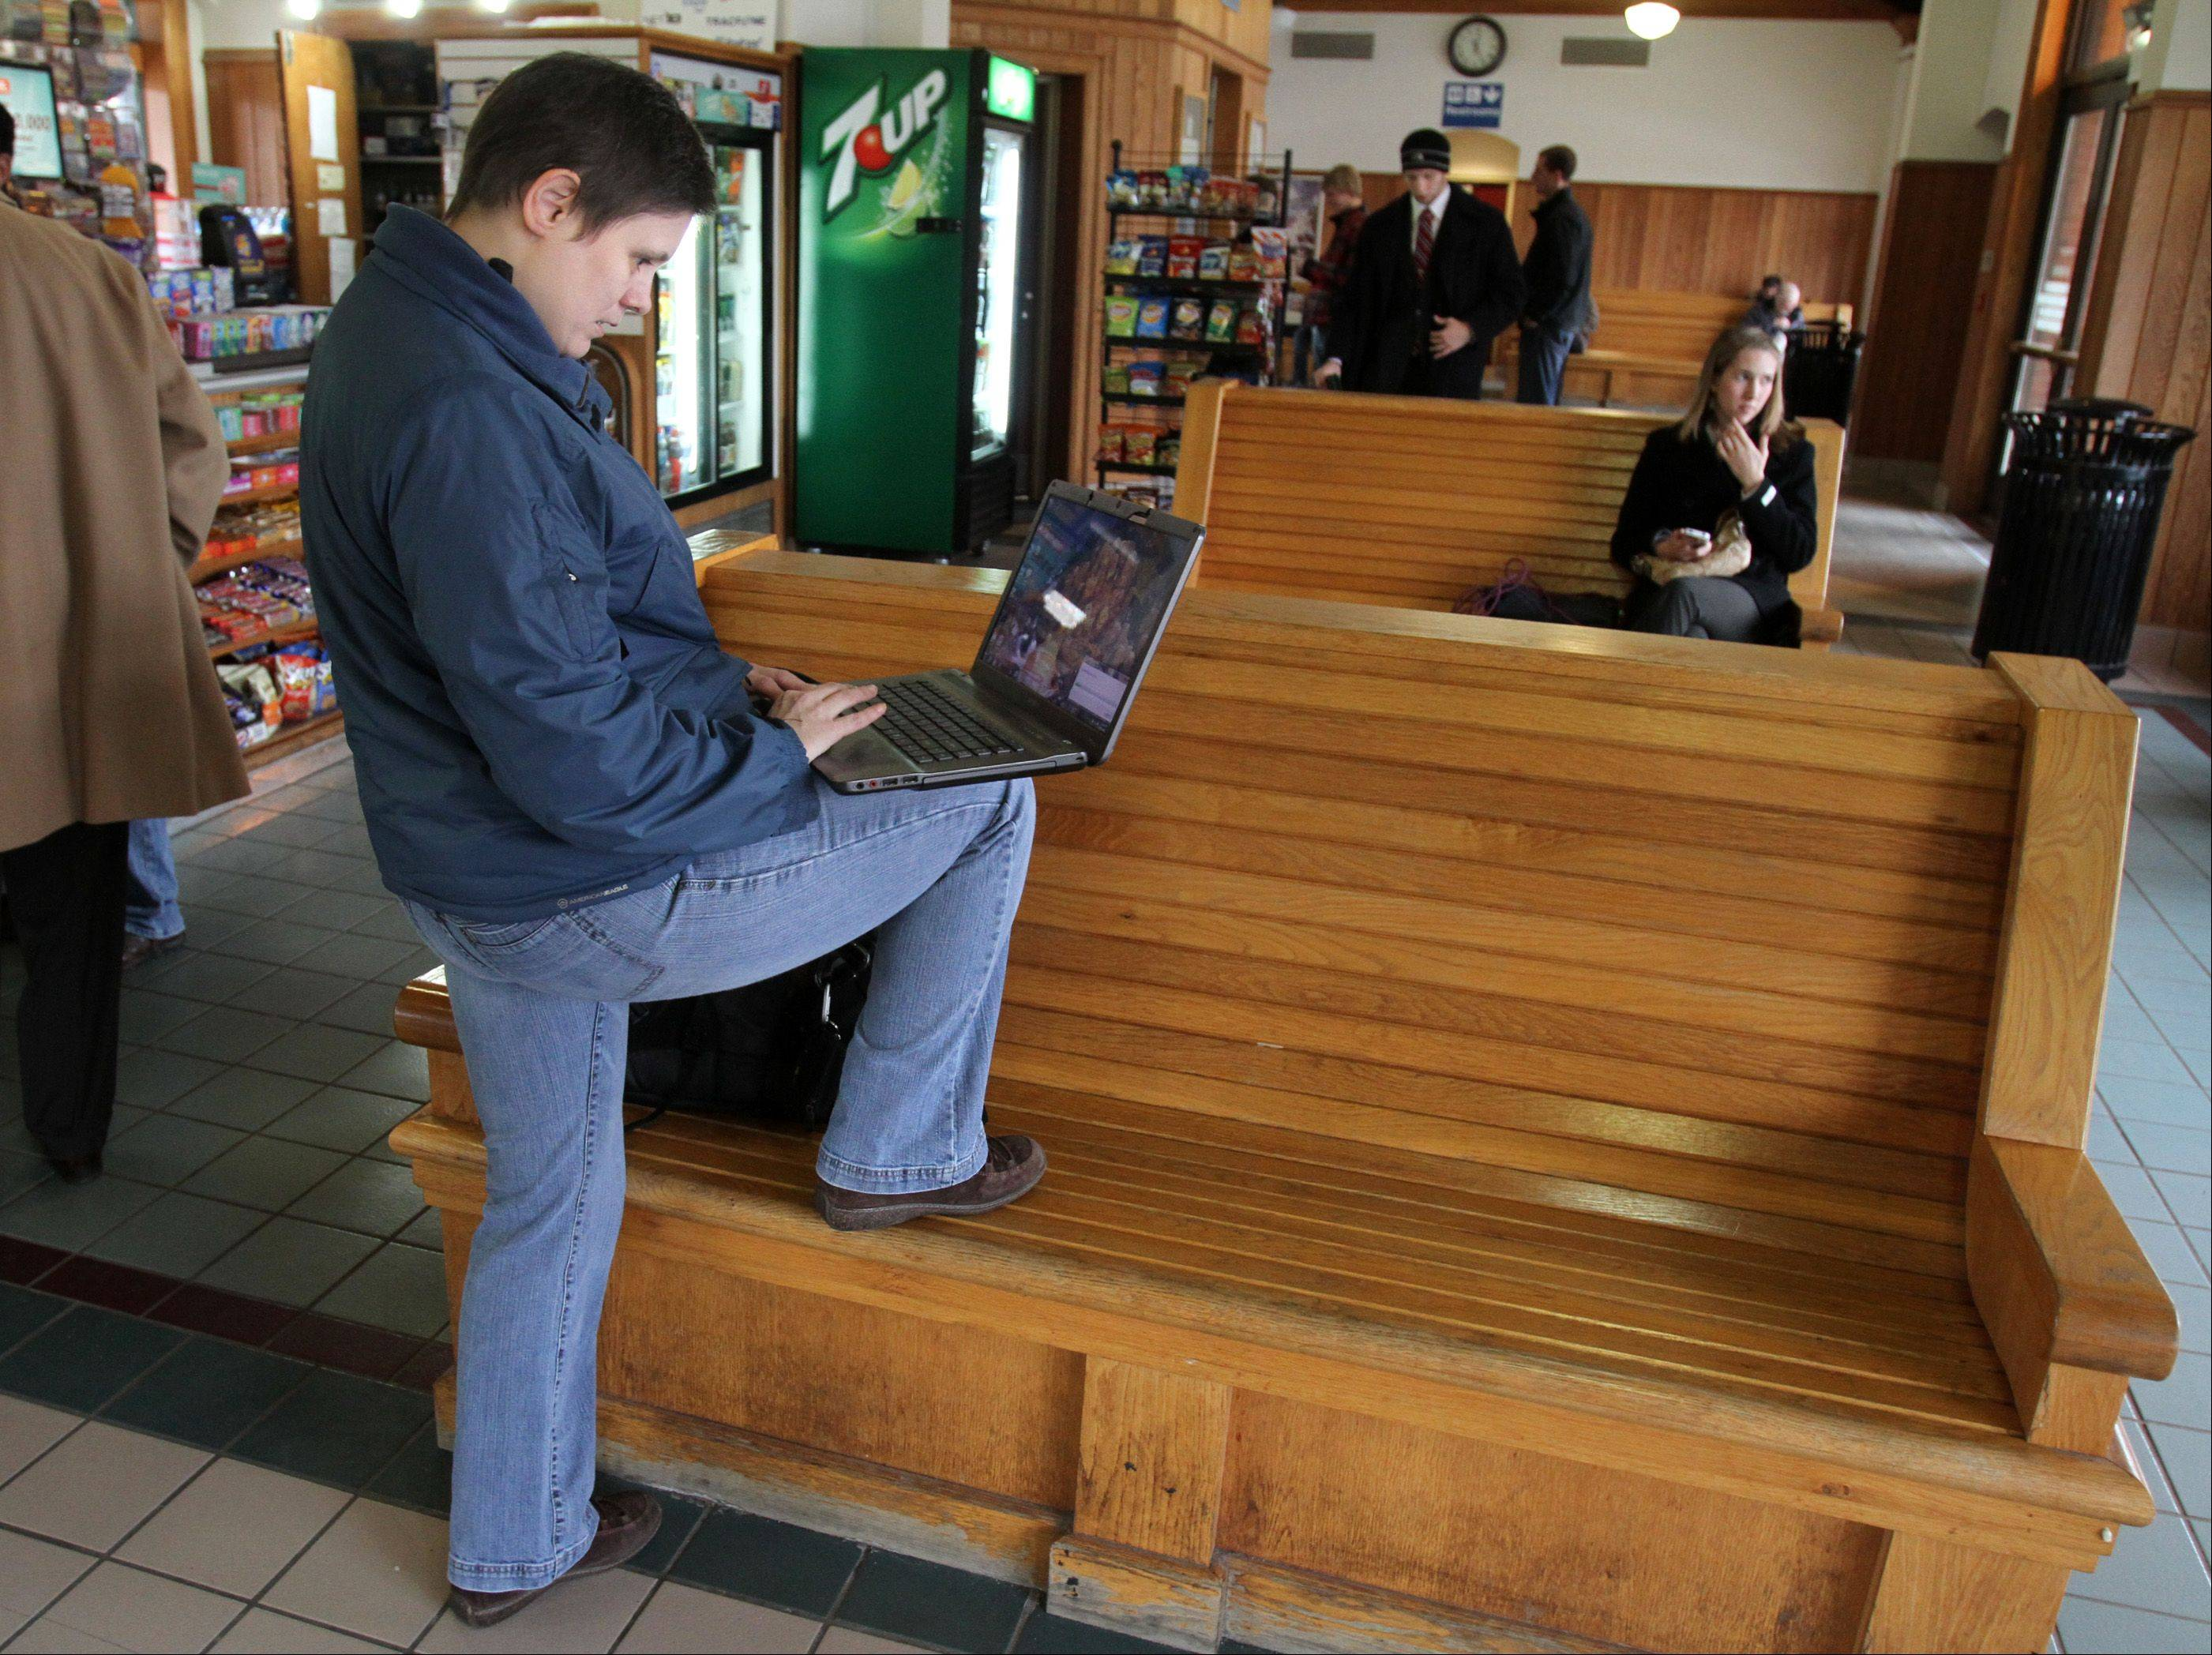 There�s free Wi-Fi at the Arlington Heights Metra station � but not onboard trains.